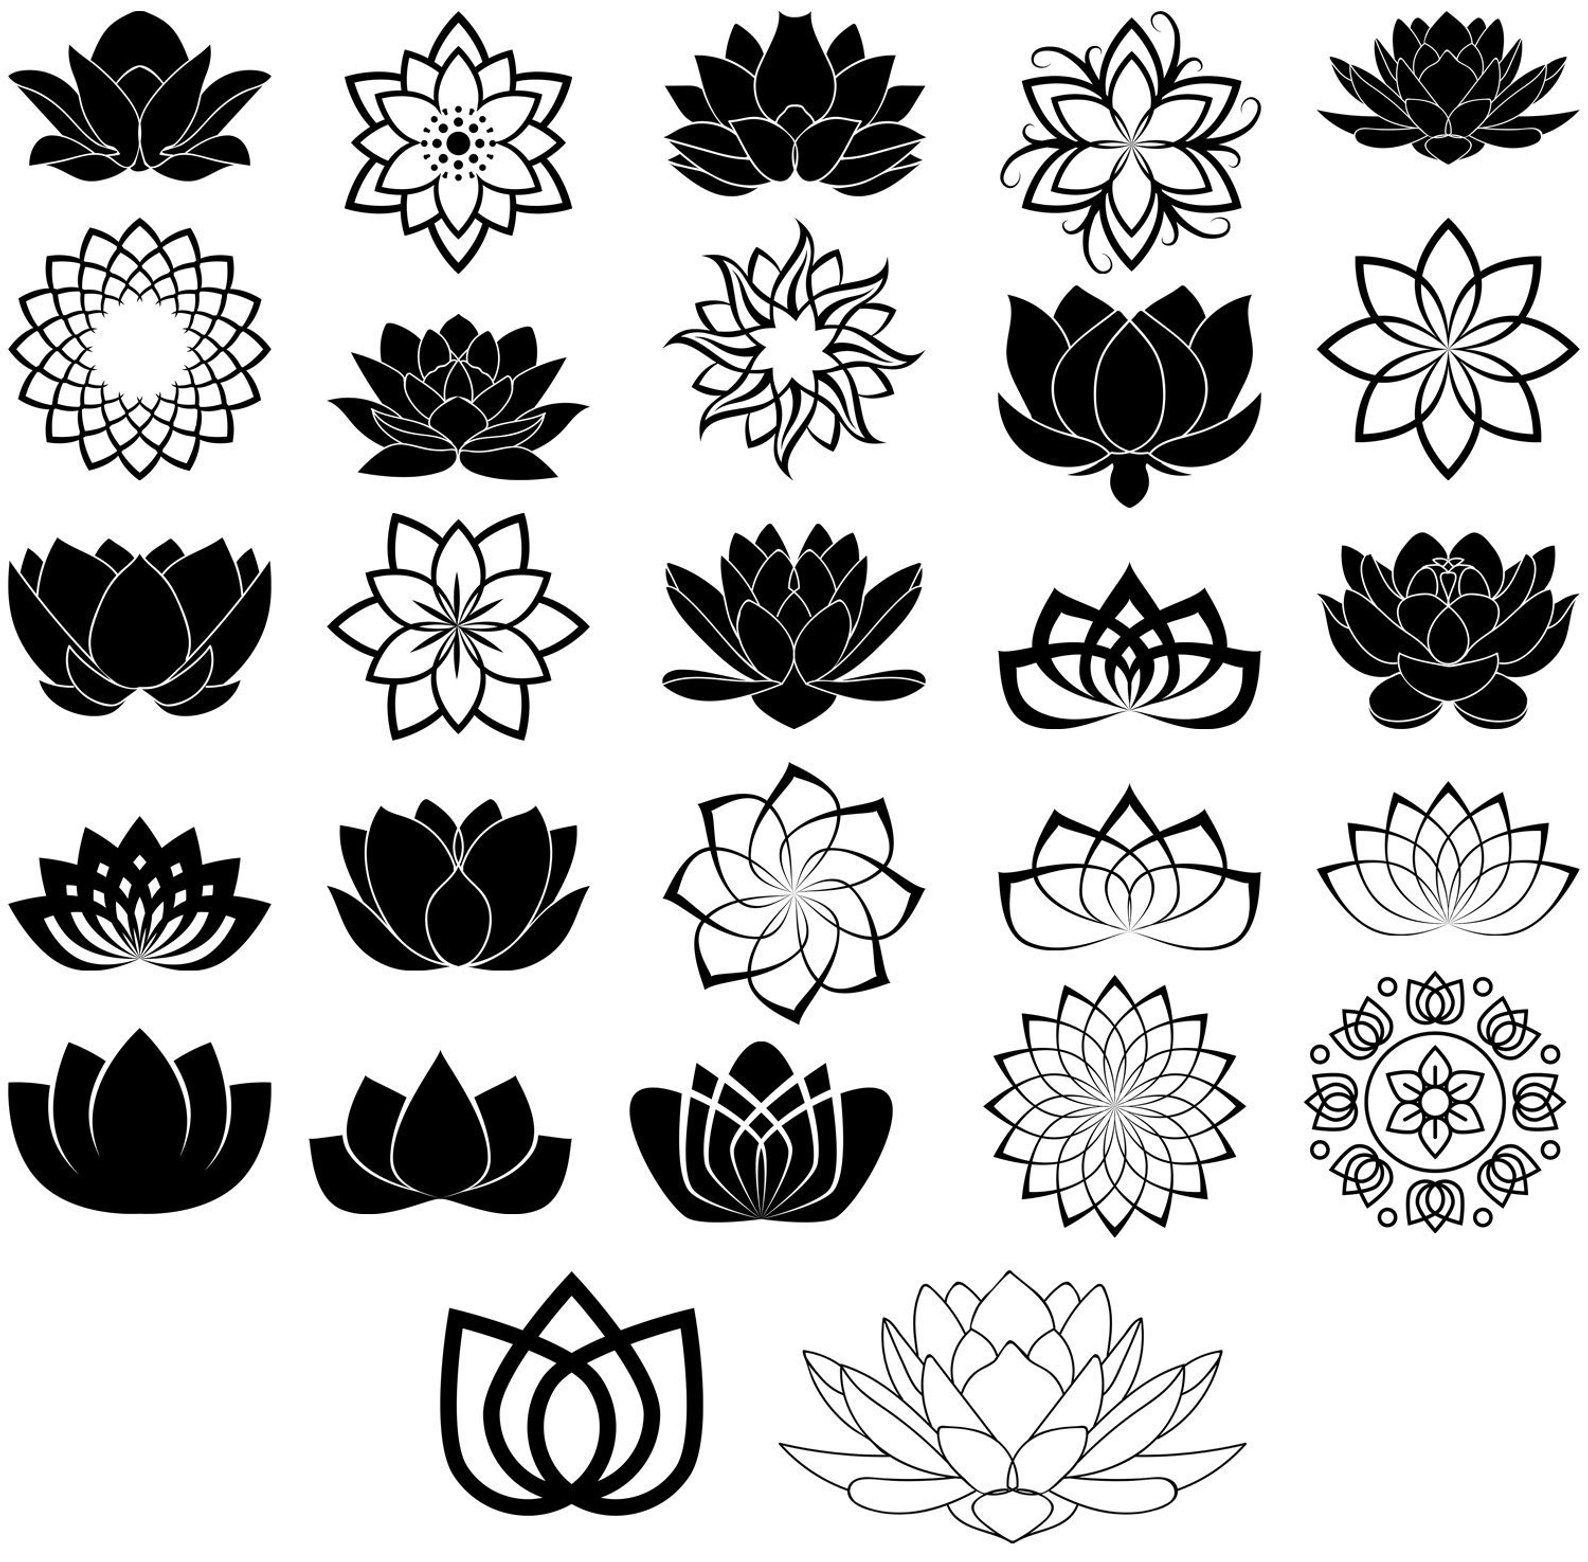 Pin on Omazing Lotuses